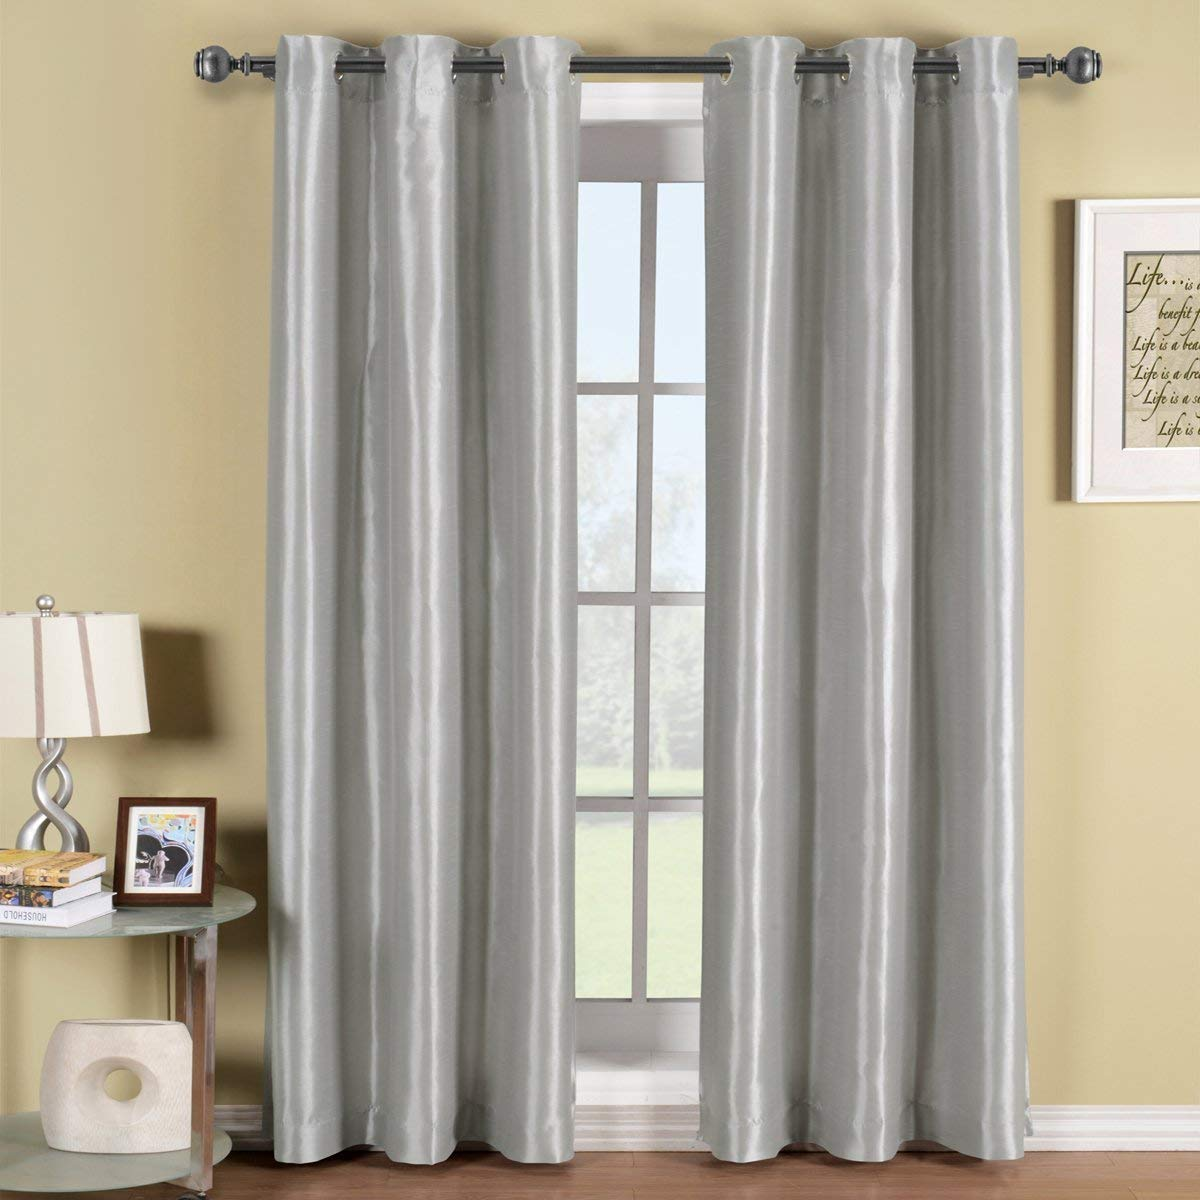 Royal Hotel Soho Silver Grommet Blackout Window Curtain Panel, Solid  Pattern, 42x96 inches